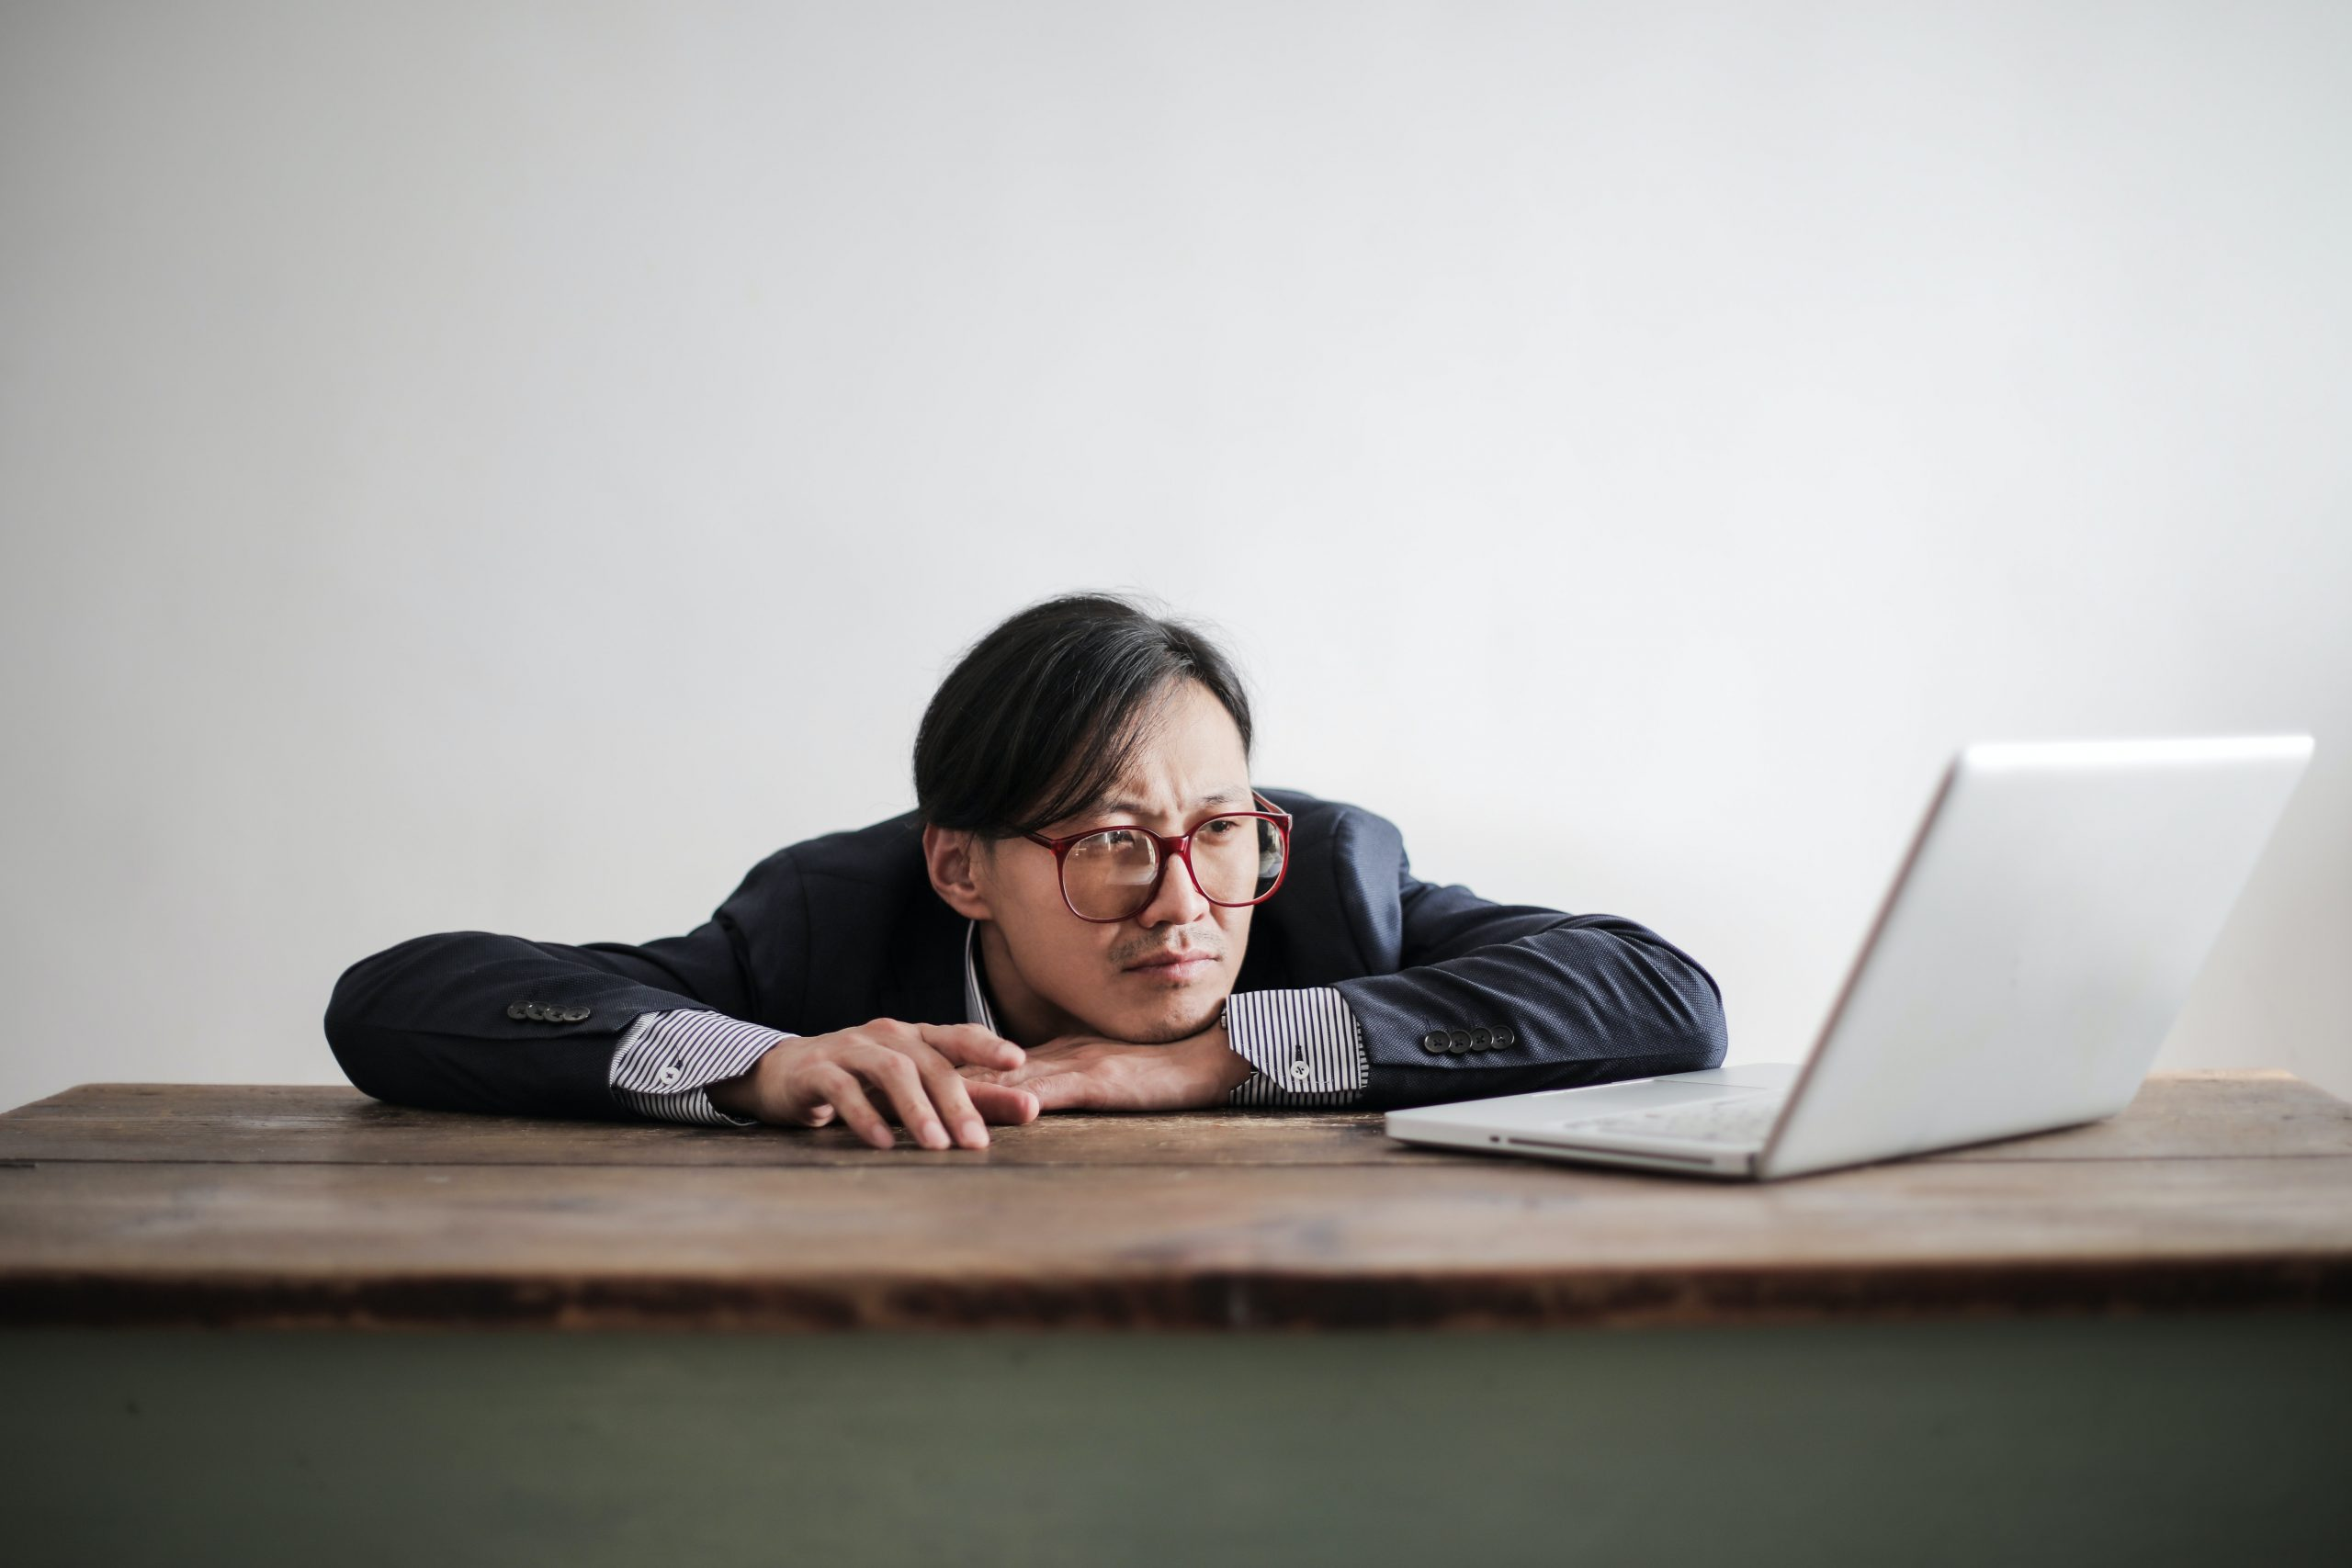 man experiencing counterproductivity as he works